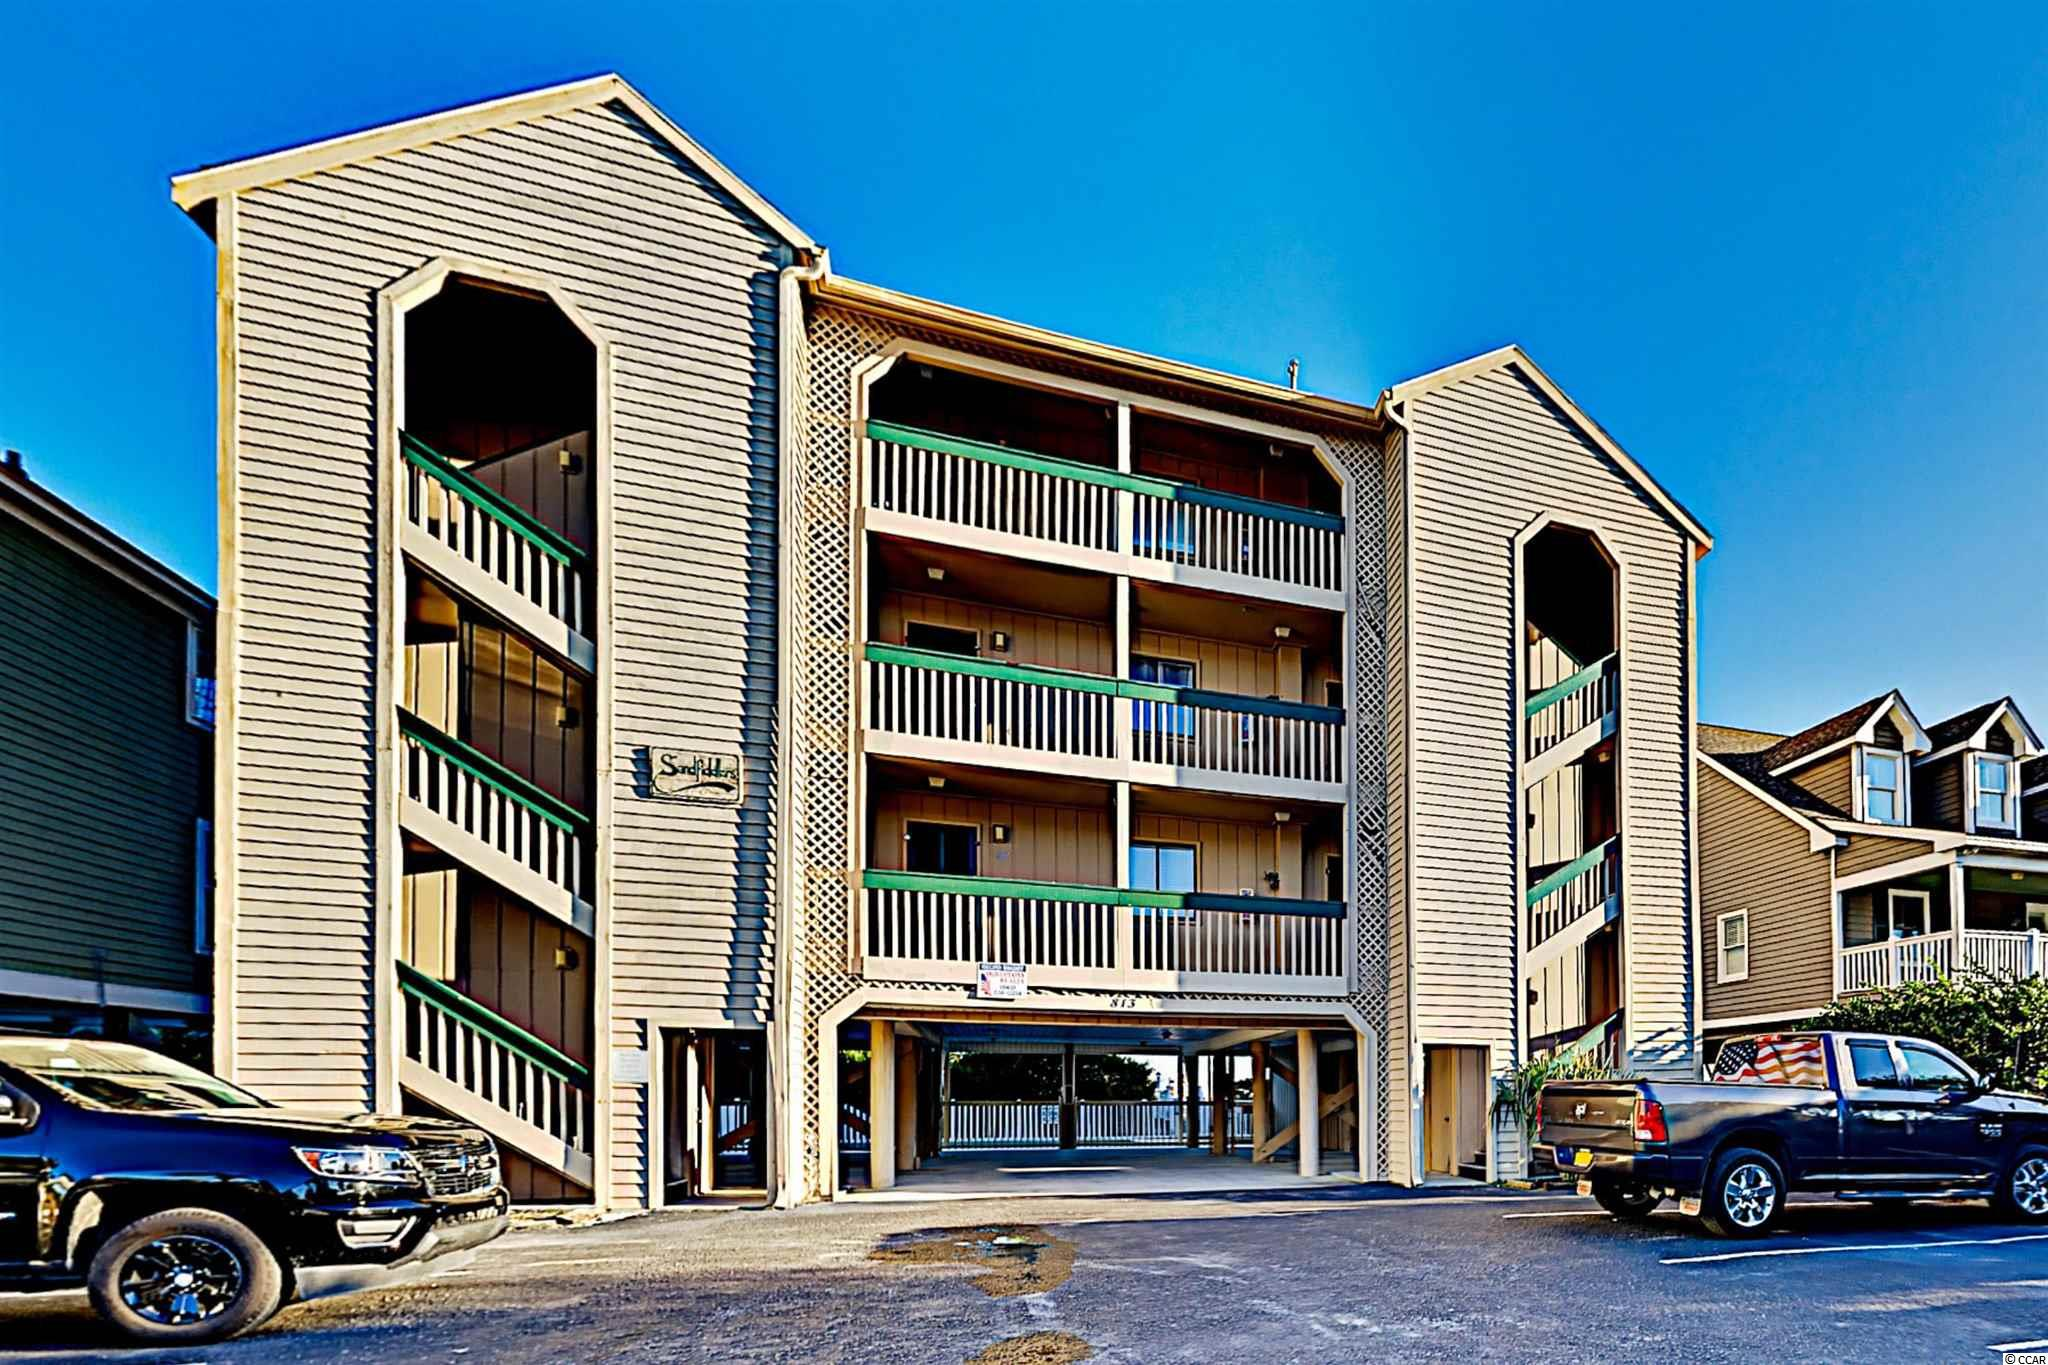 Sand Fiddler is a quiet nine unit building nestled along the oceanfront in Surfside Beach, SC with a private pool and direct beach access.  This unit is a must see.  First floor unit with a beautiful view of the ocean.  It has been completely remodeled from ceiling to floor.  Luxury flooring throughout, quartz countertops, tile backsplash, brand new stainless appliances, and many more upgrades.  This unit will be sold fully furnished and move in ready. Enjoy your morning coffee on the deck overlooking the pool and ocean.  This view could be yours to enjoy along with the ability to draw solid rental income.  Agent is related to the seller.